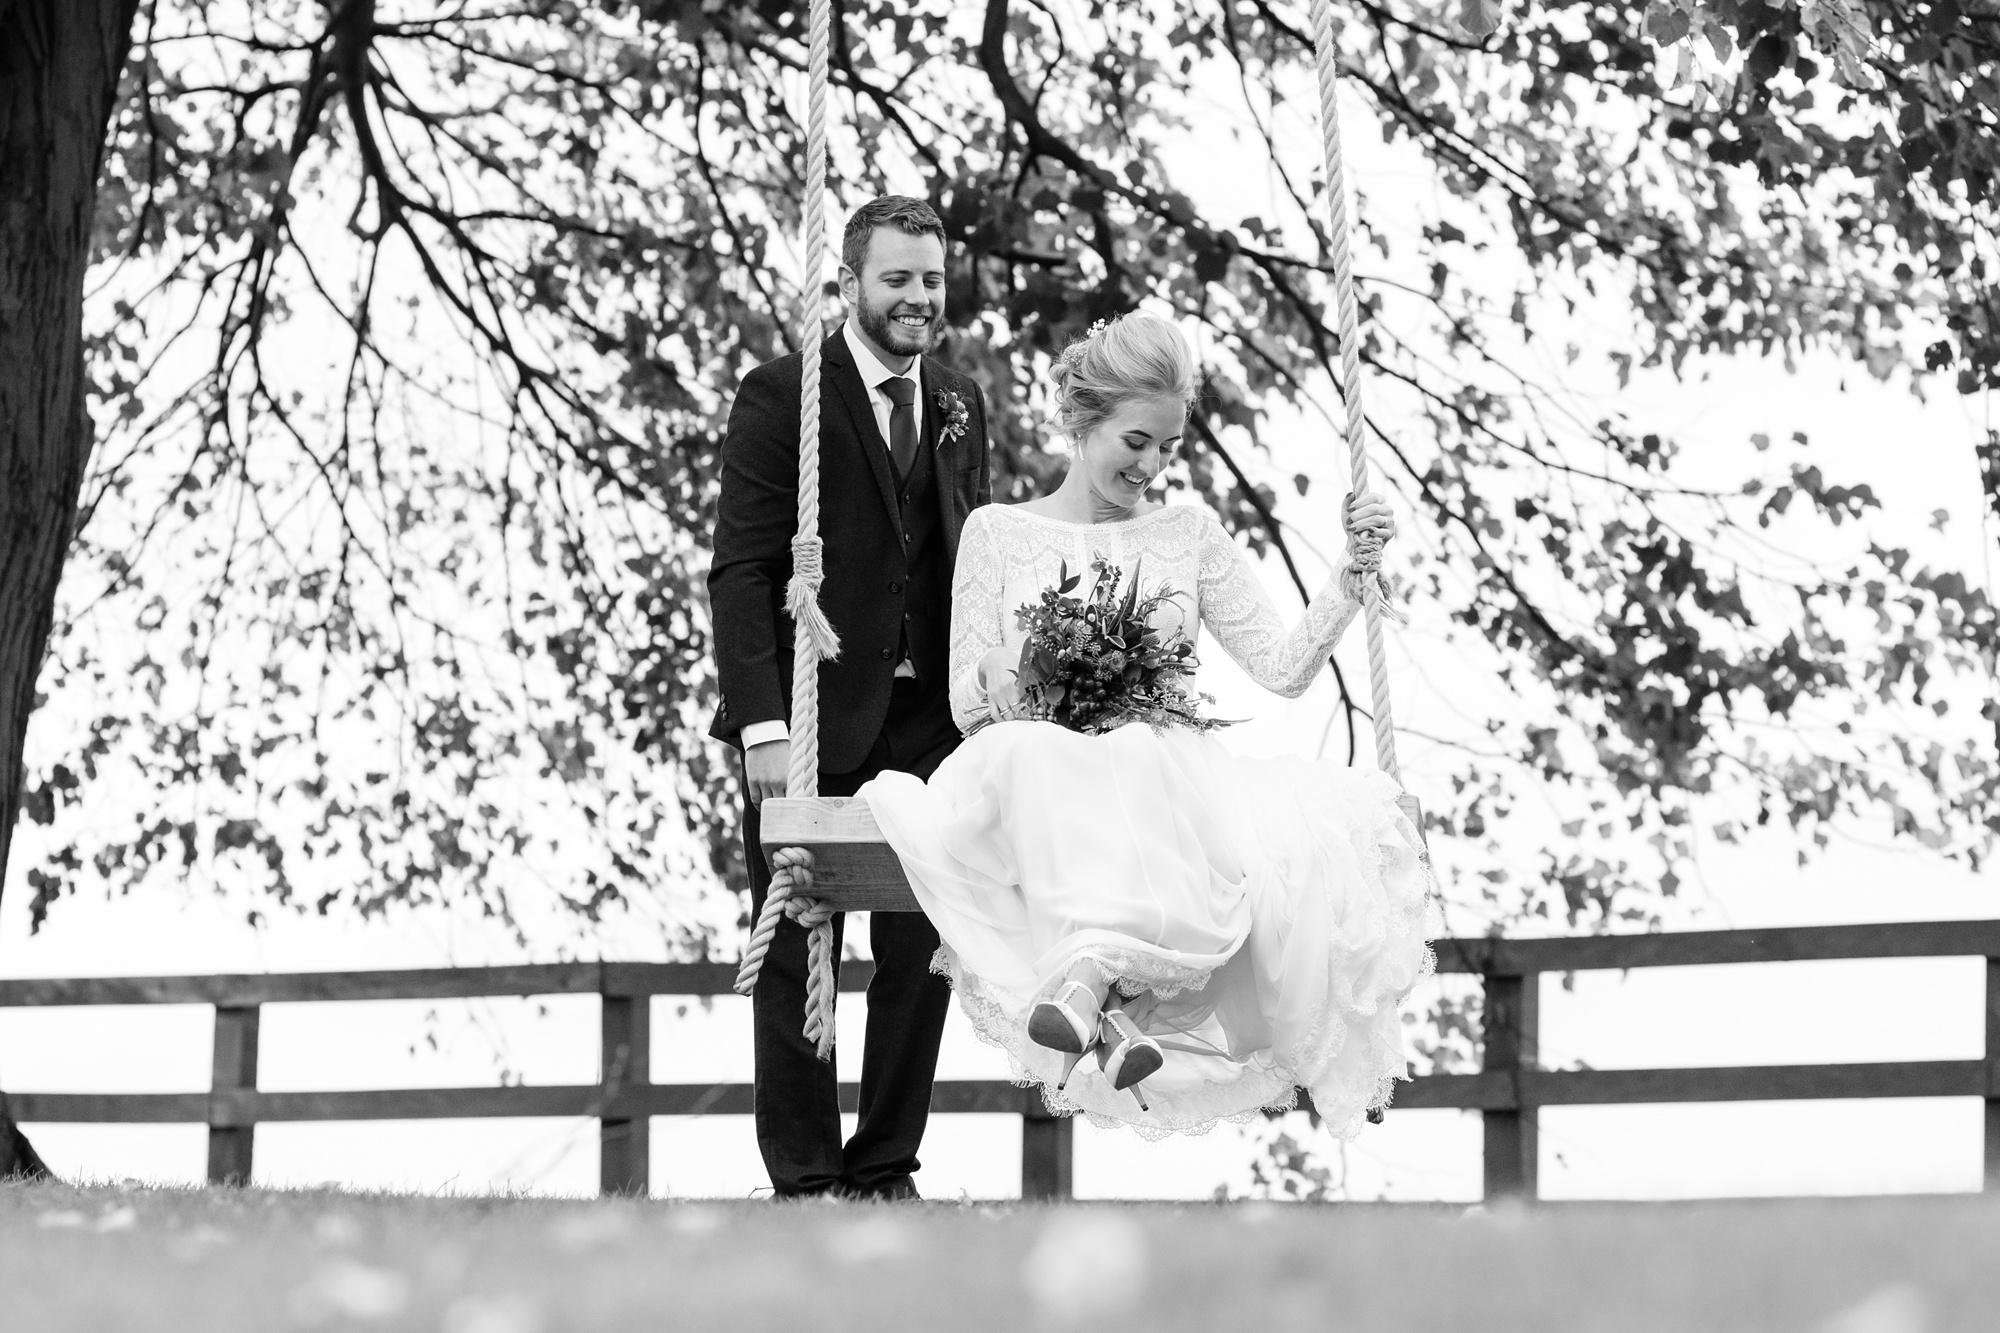 Barmbyfield Barn Wedding Photography the couple on a swing